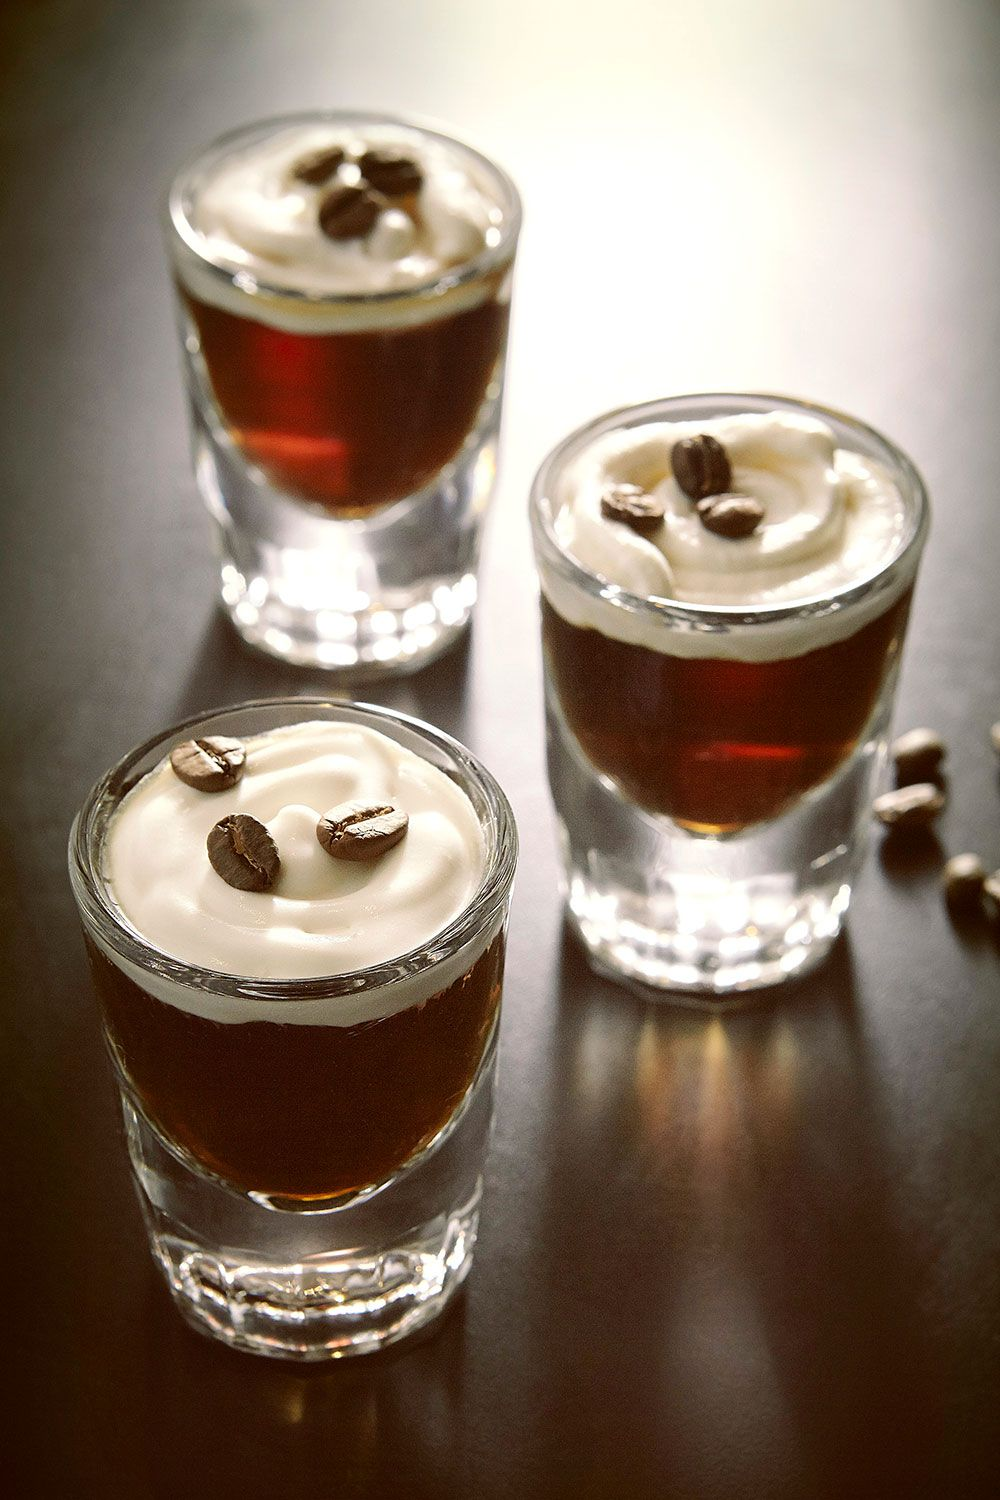 <p><strong>Ingredients:</strong></p><p>½ part Tullamore D.E.W. Original</p><p>¼ part premium coffee liqueur</p><p>¼ part thickened fresh cream</p><p>Coffee beans to garnish</p><p><strong>Directions:</strong></p><p>Add Tullamore D.E.W. and coffee liqueur to a mixing glass. Stir and pour into shot glasses. Top each with fresh cream and garnish with coffee beans.</p>